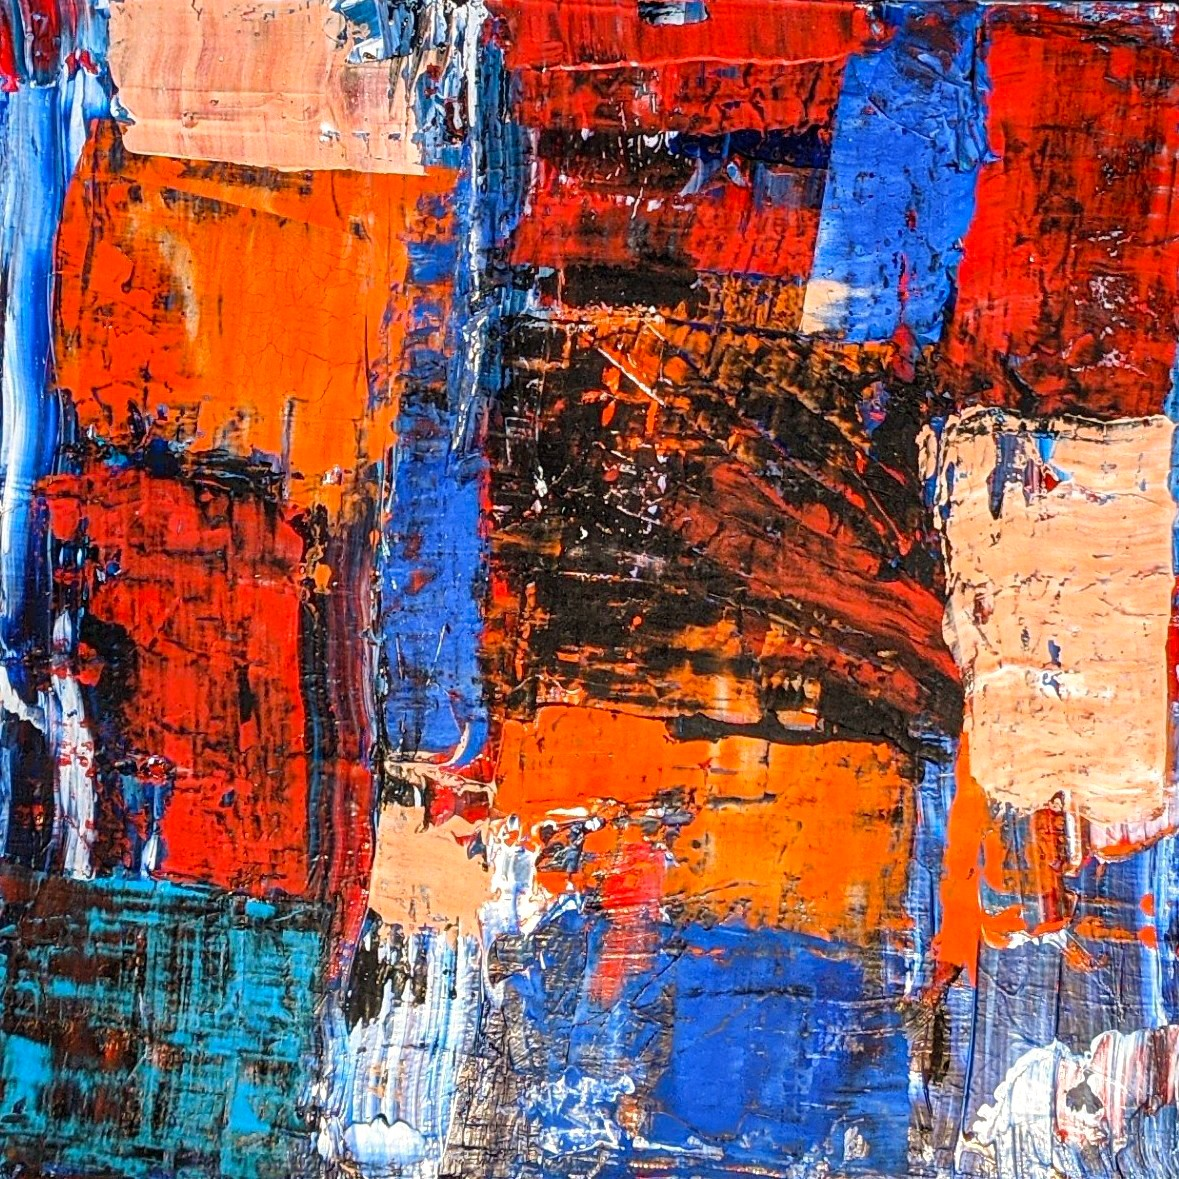 Abstract Art. Title: Recollections Ⅲ, Original Acrylic on canvas, 24x24 in by Contemporary Canadian Artist David Hovan.